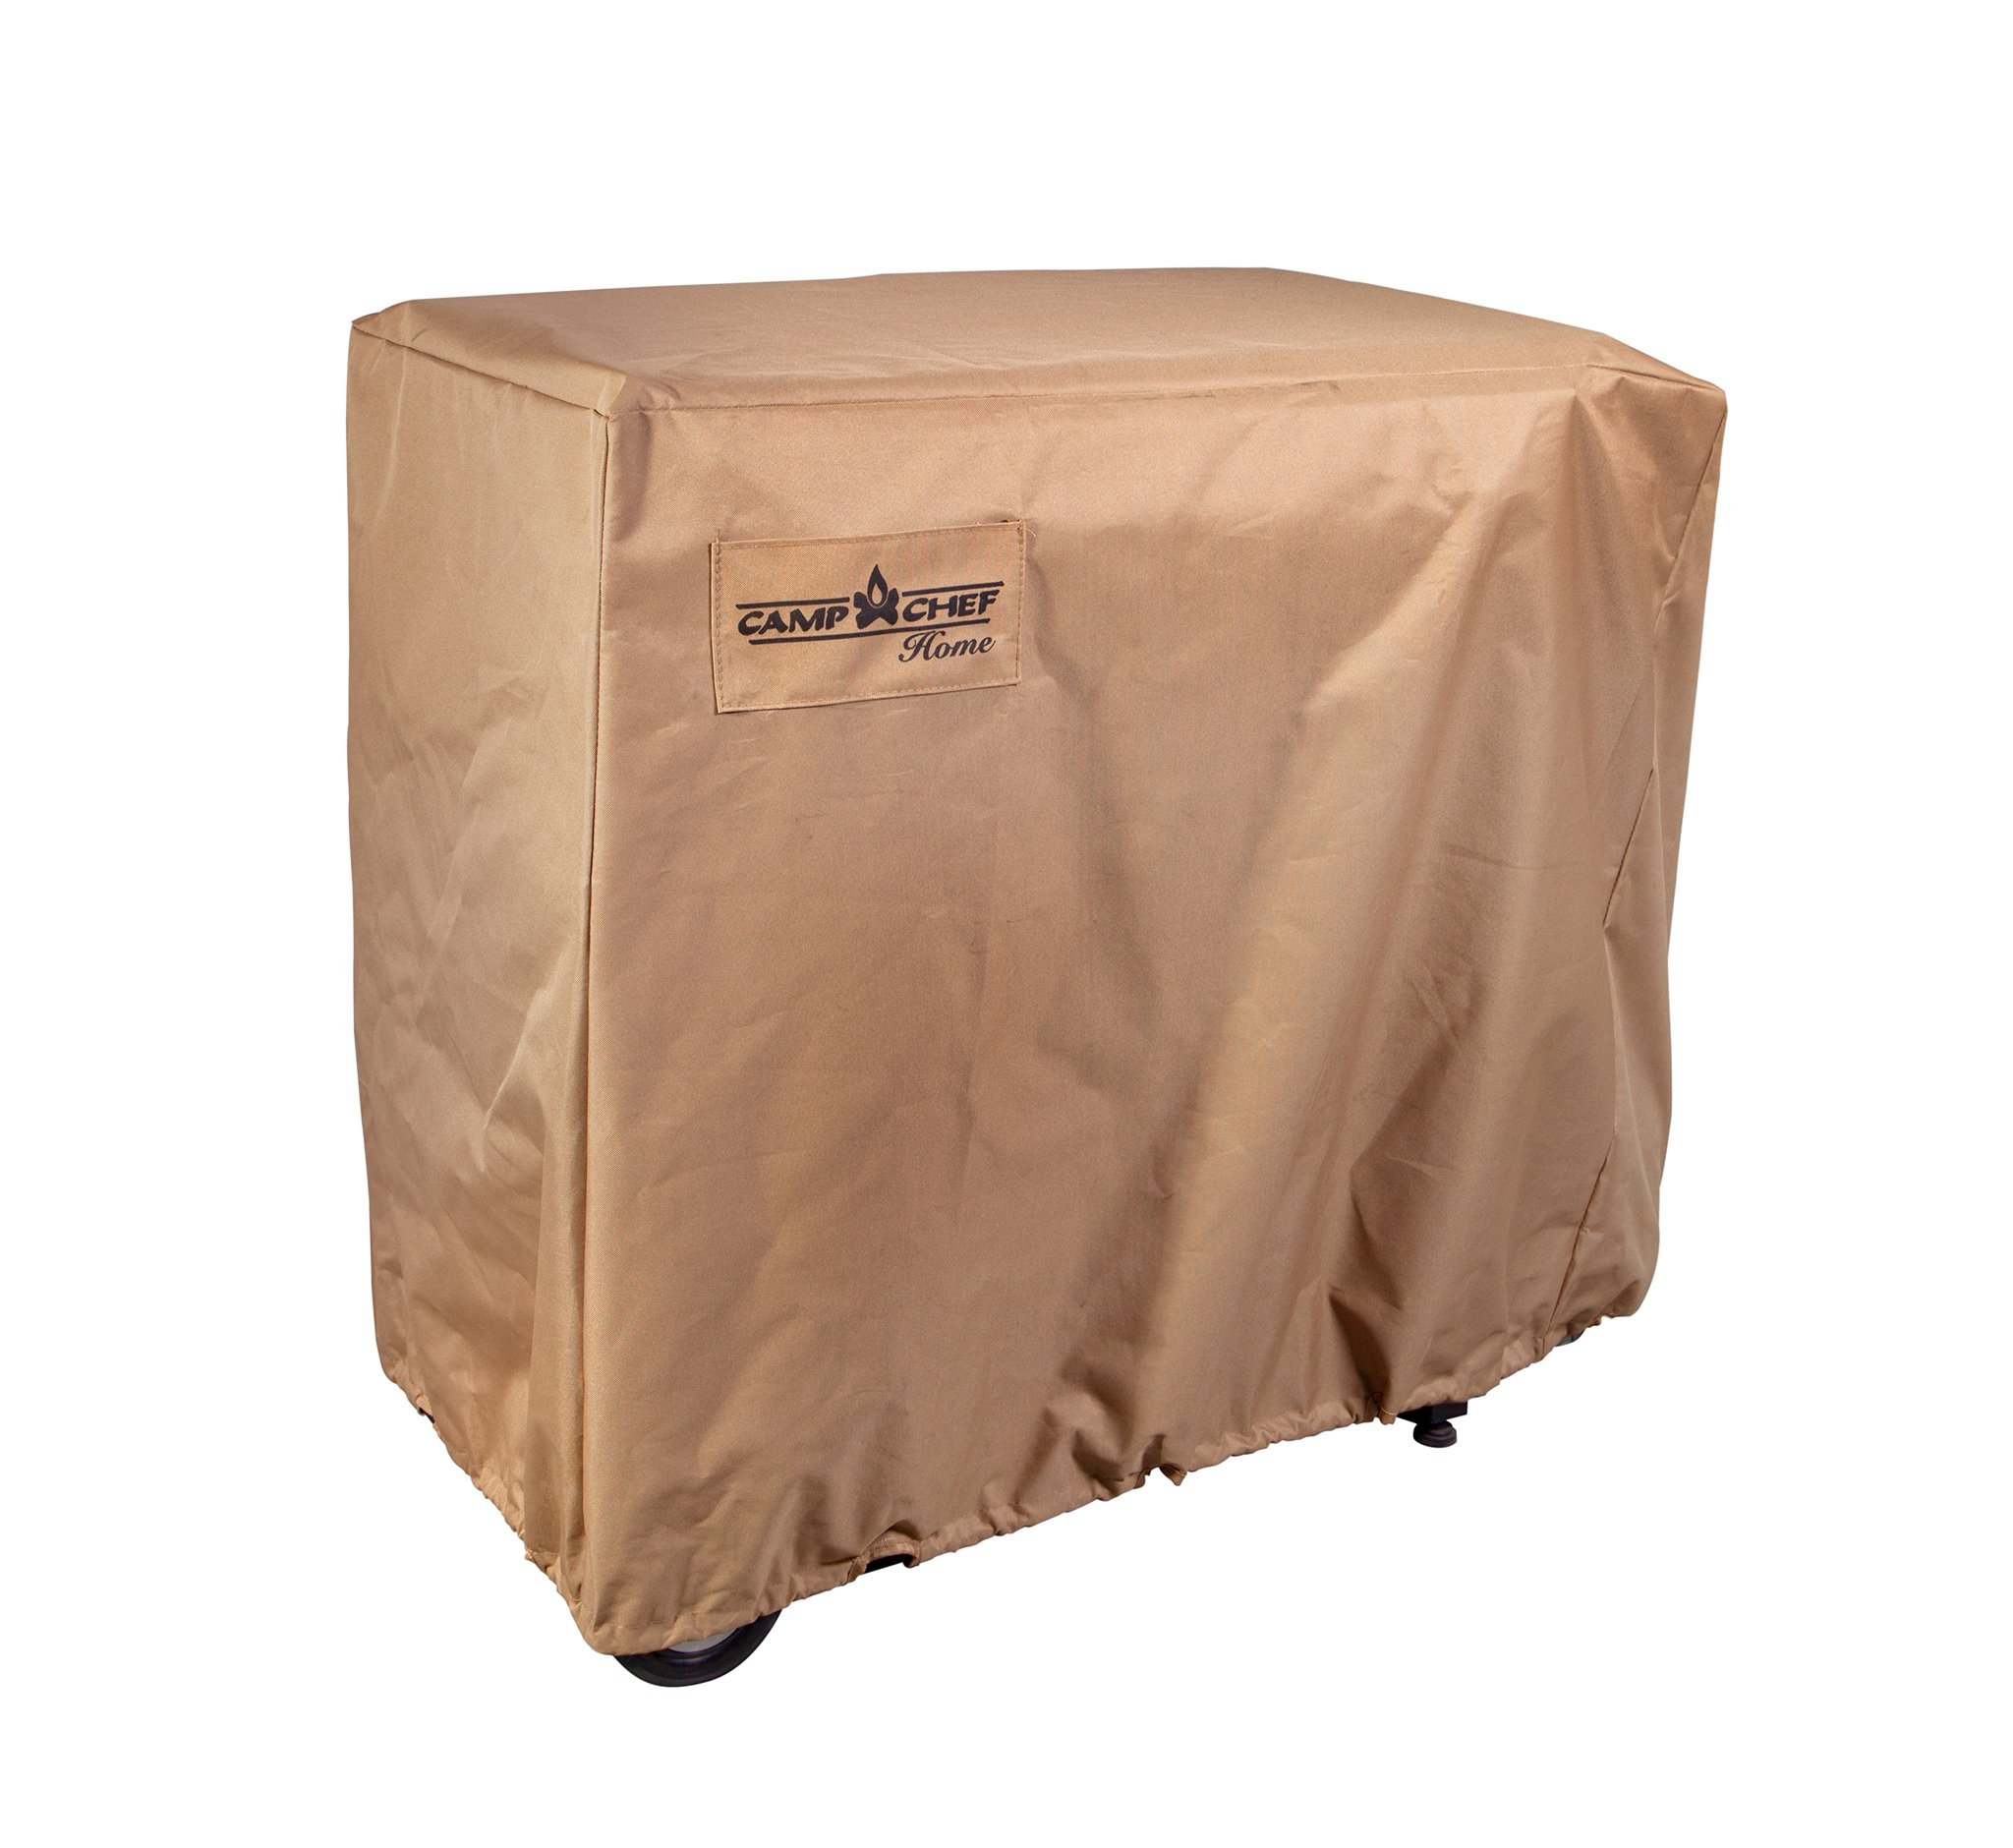 Camp Chef Flat Top Grill Patio Cover by Camp Chef